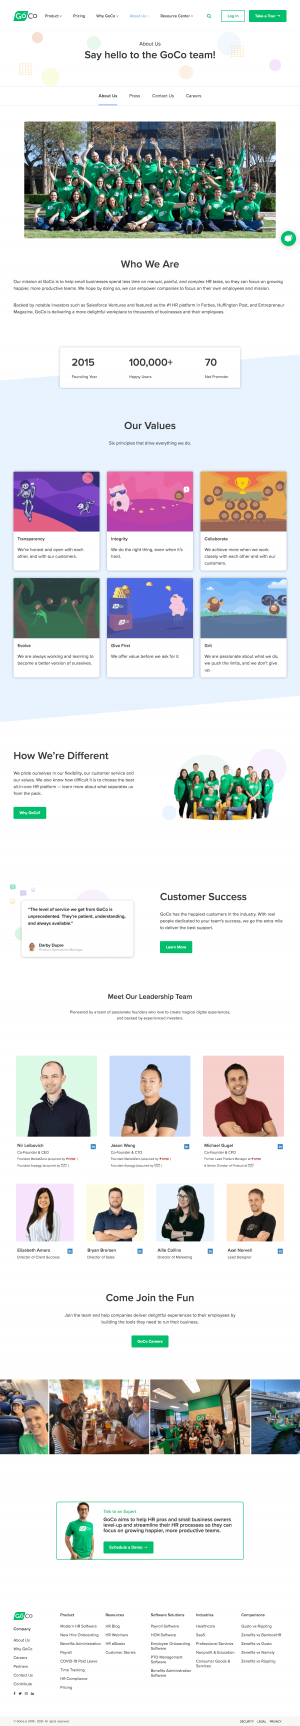 Goco – About Us page